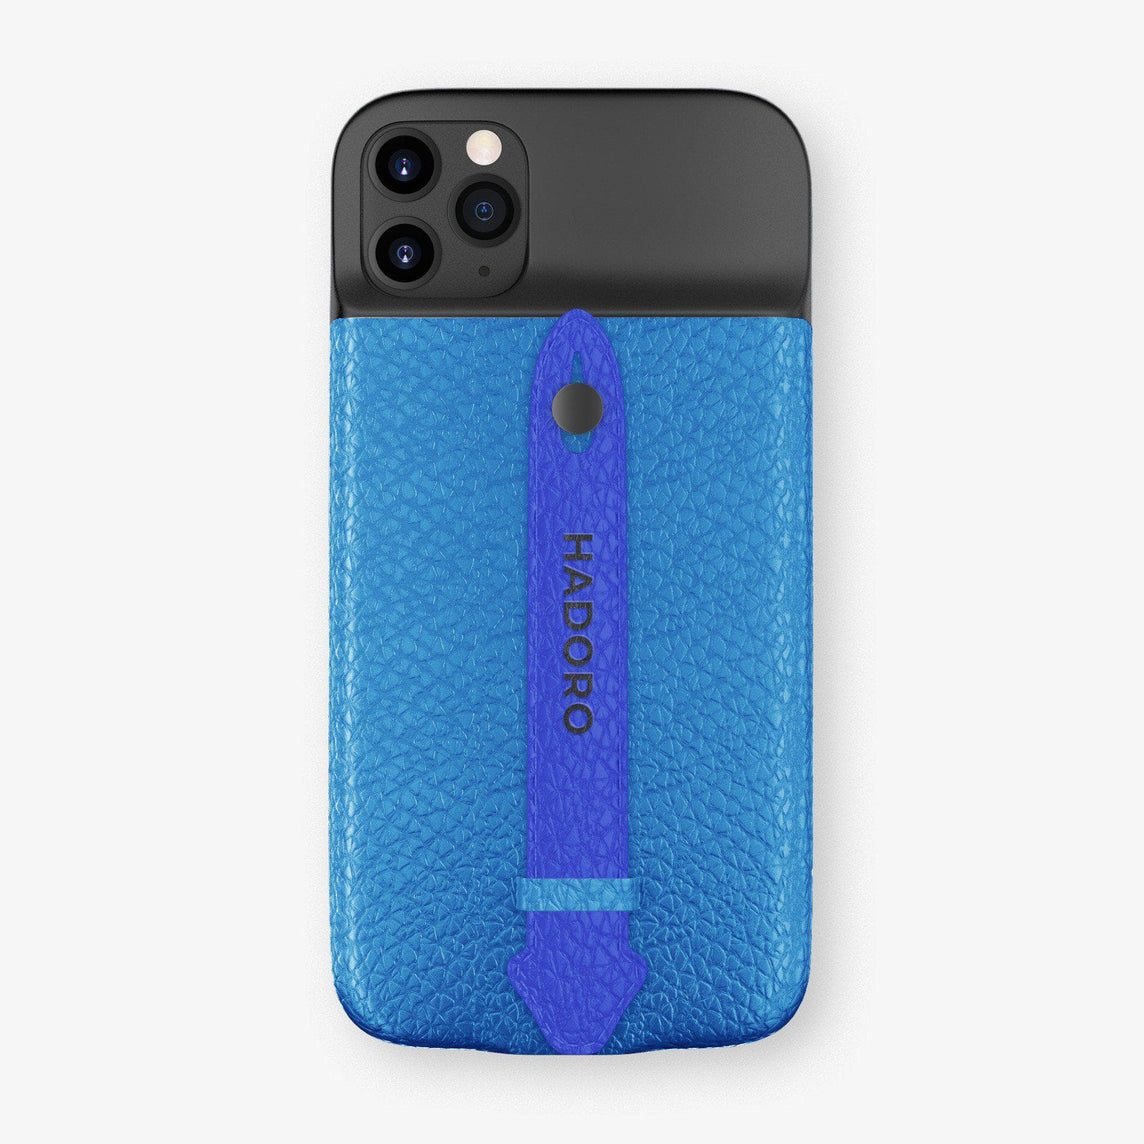 Calfskin Battery Finger Case for iPhone 11 Pro Max | Blue Lagoon/Peony Blue - Black without-personalization